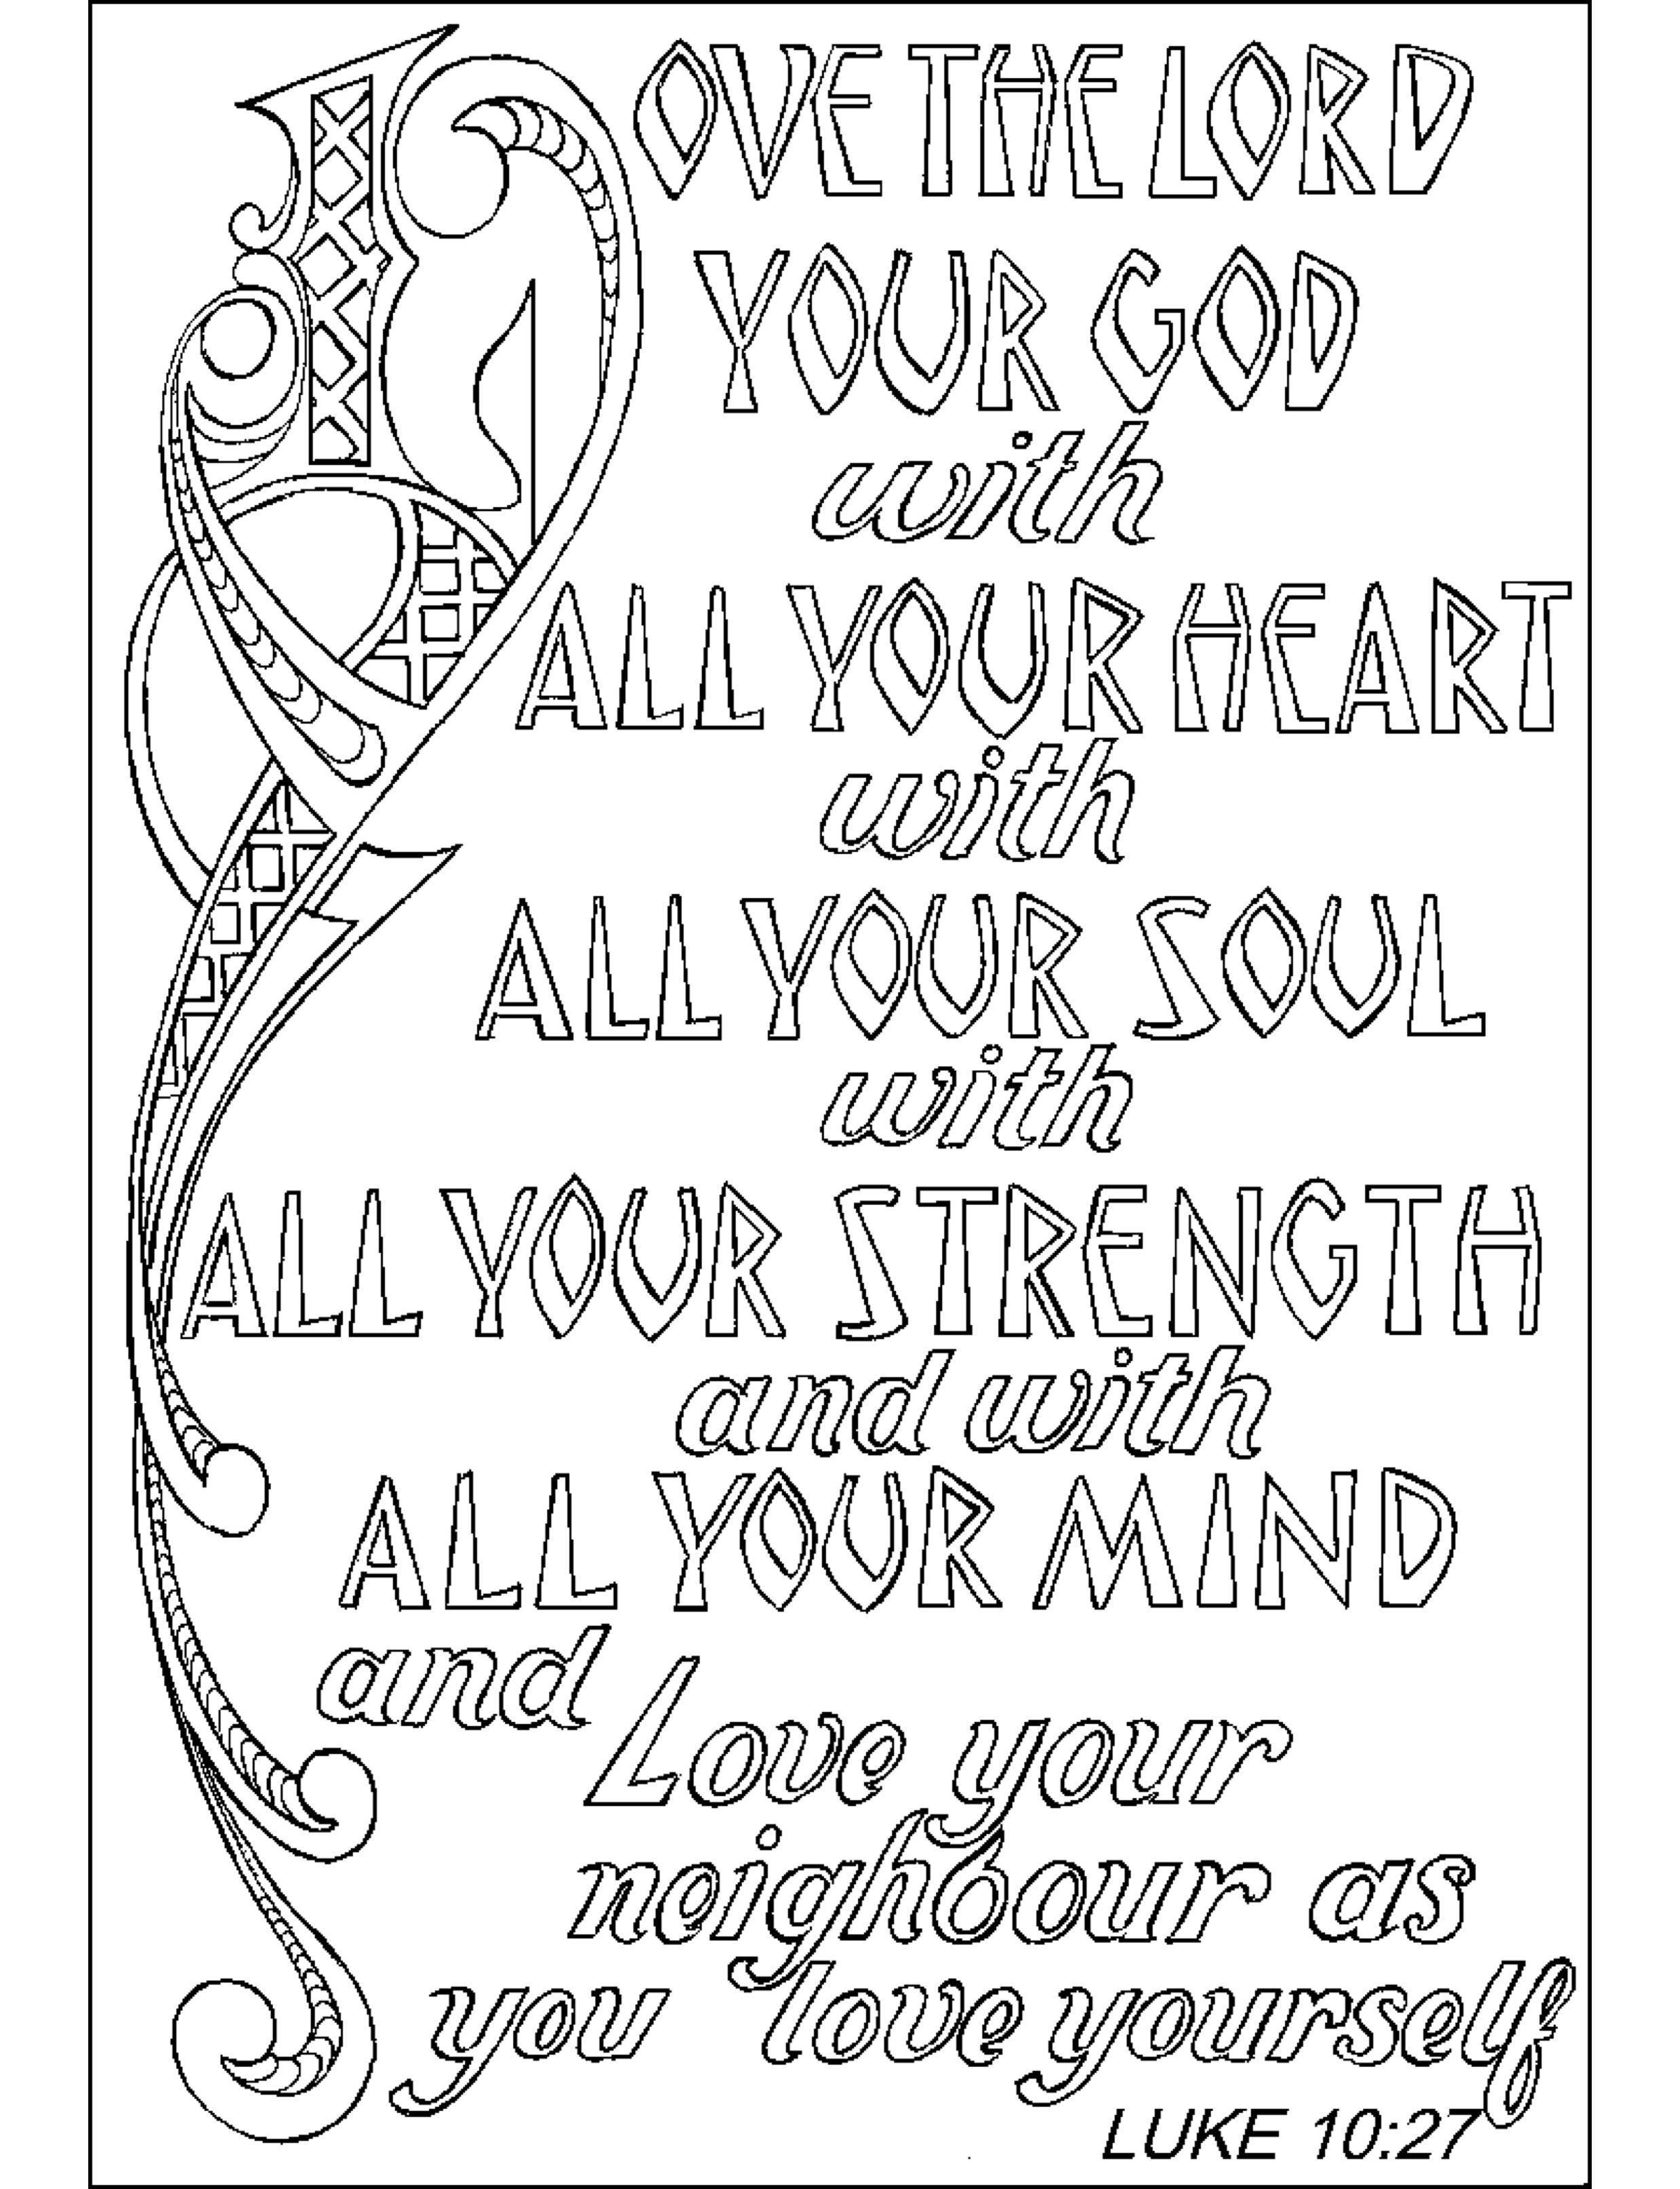 Free bible story coloring pages for kids - 12 Bible Verse Coloring Pages Instant By Happyflowerprintable K Pinterest Bible Adult Coloring And Journaling